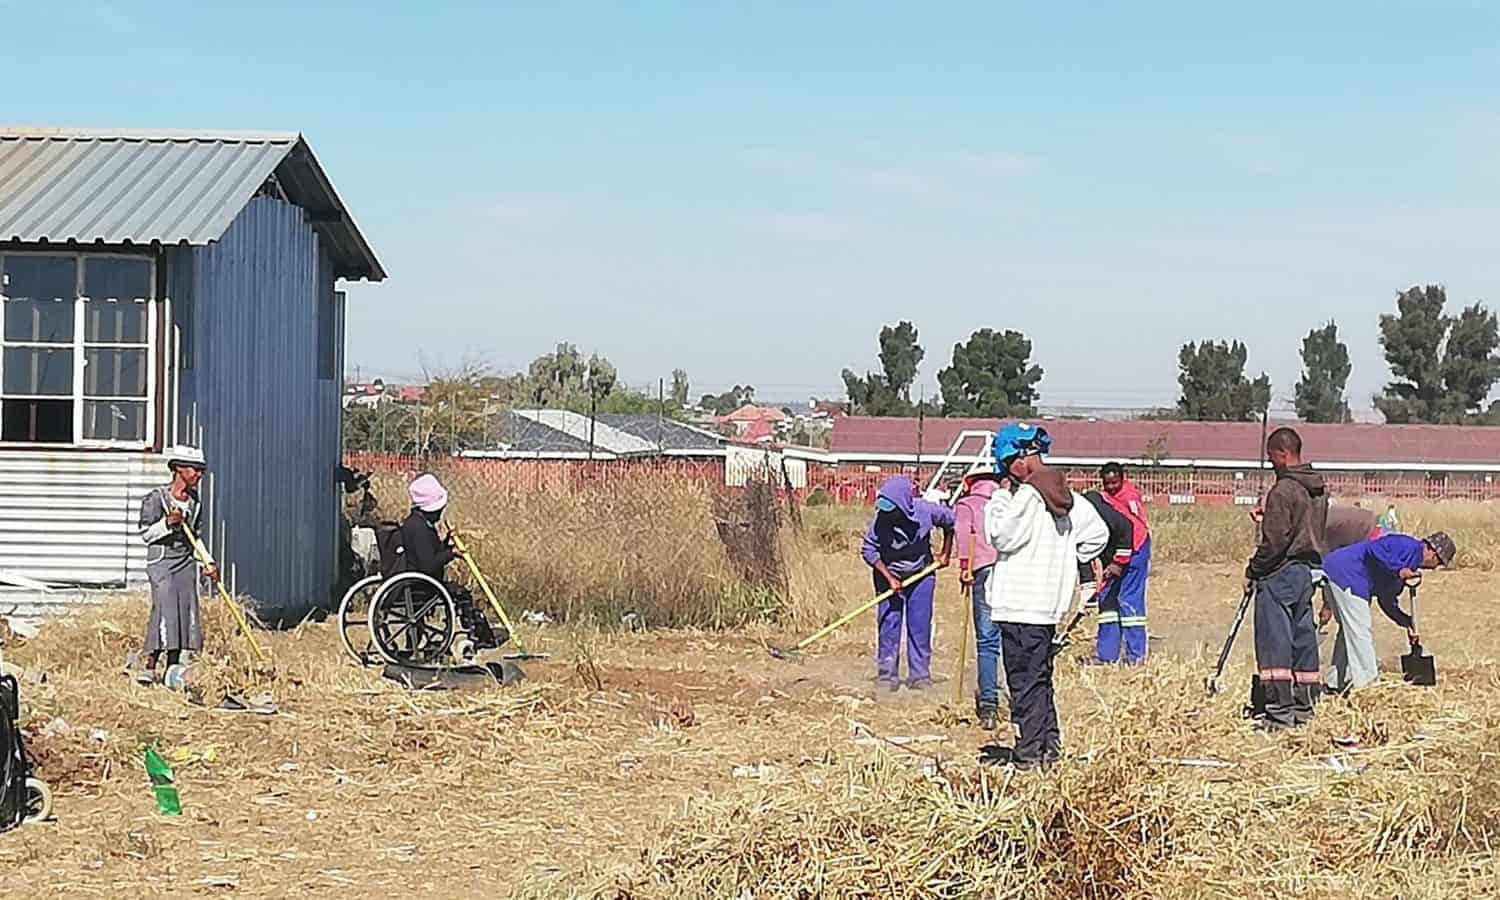 Humanitarian organization INMED will install and update aquaponics systems for cooperatives of disabled farmers in South Africa to help them integrate better into the economy.